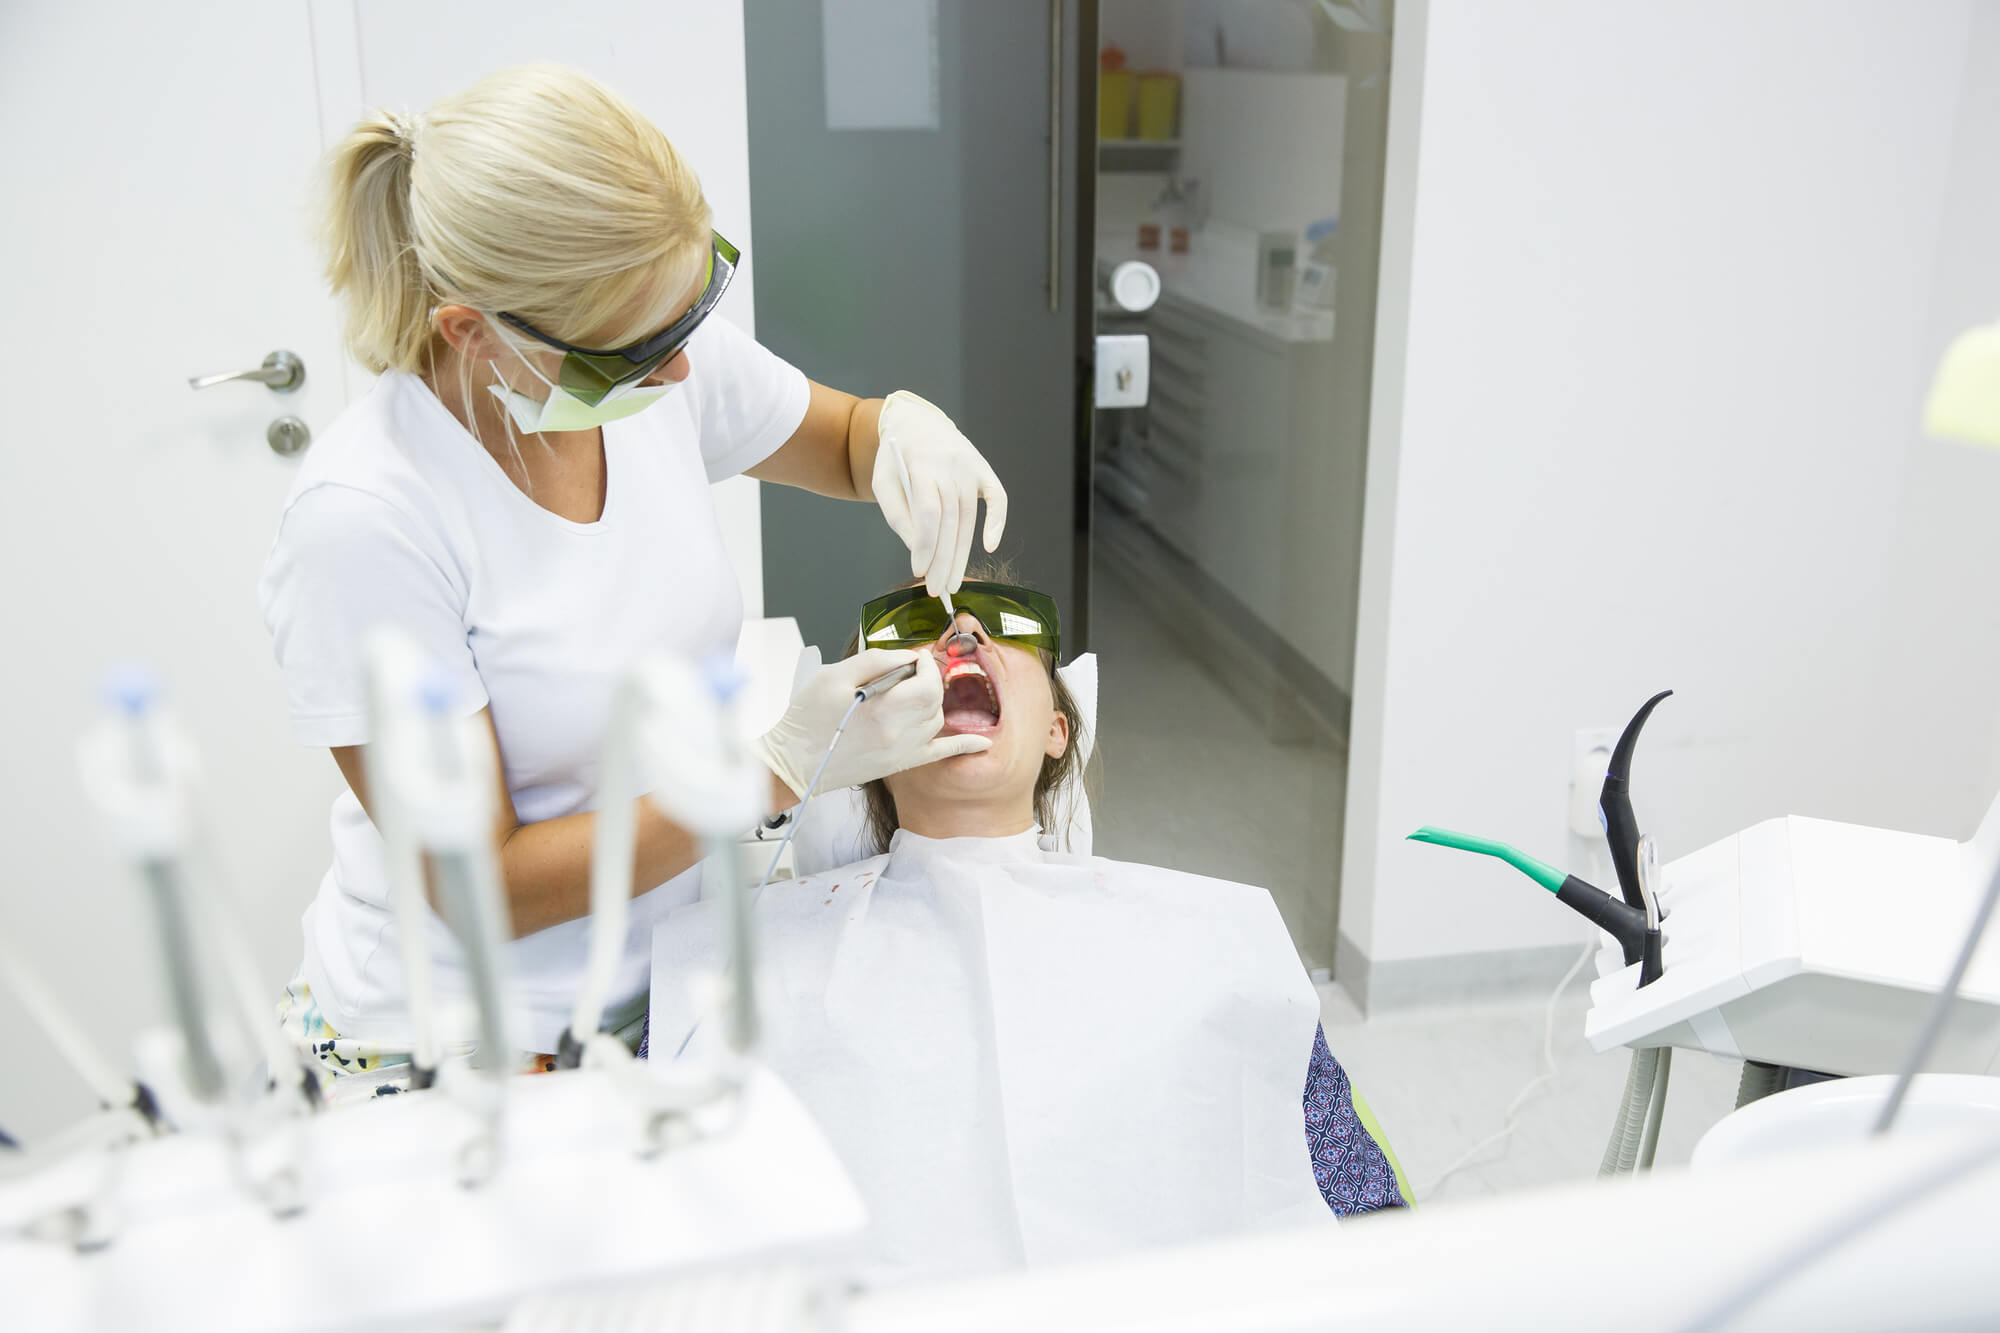 Where can I find Laser Dentistry Boynton Beach?